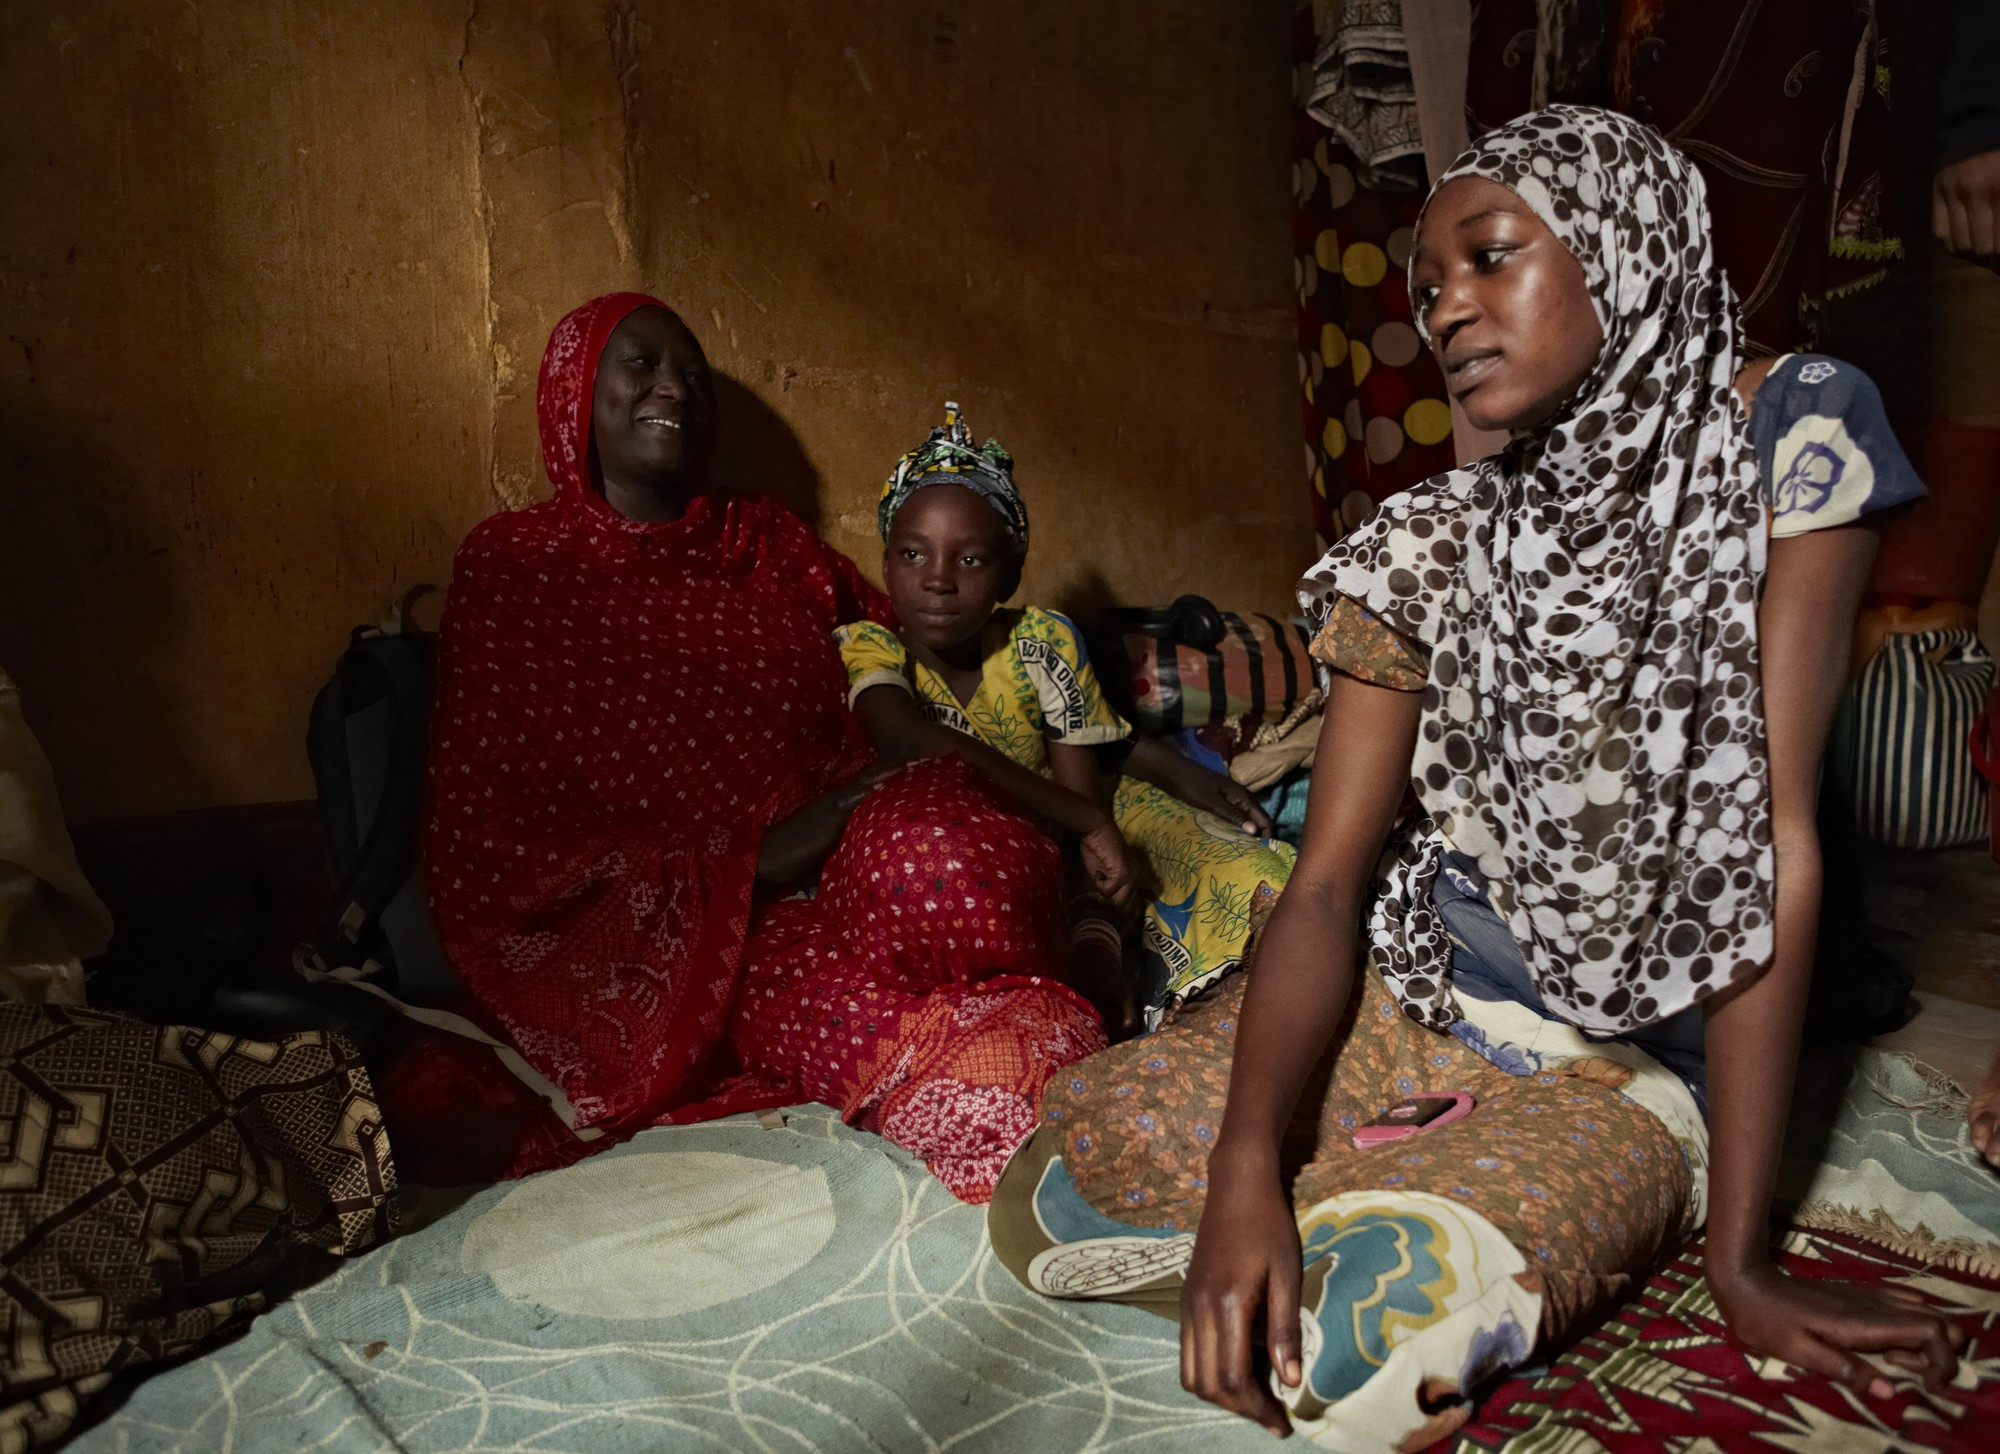 Child bride Lamana sits with her family after escaping a violent marriage